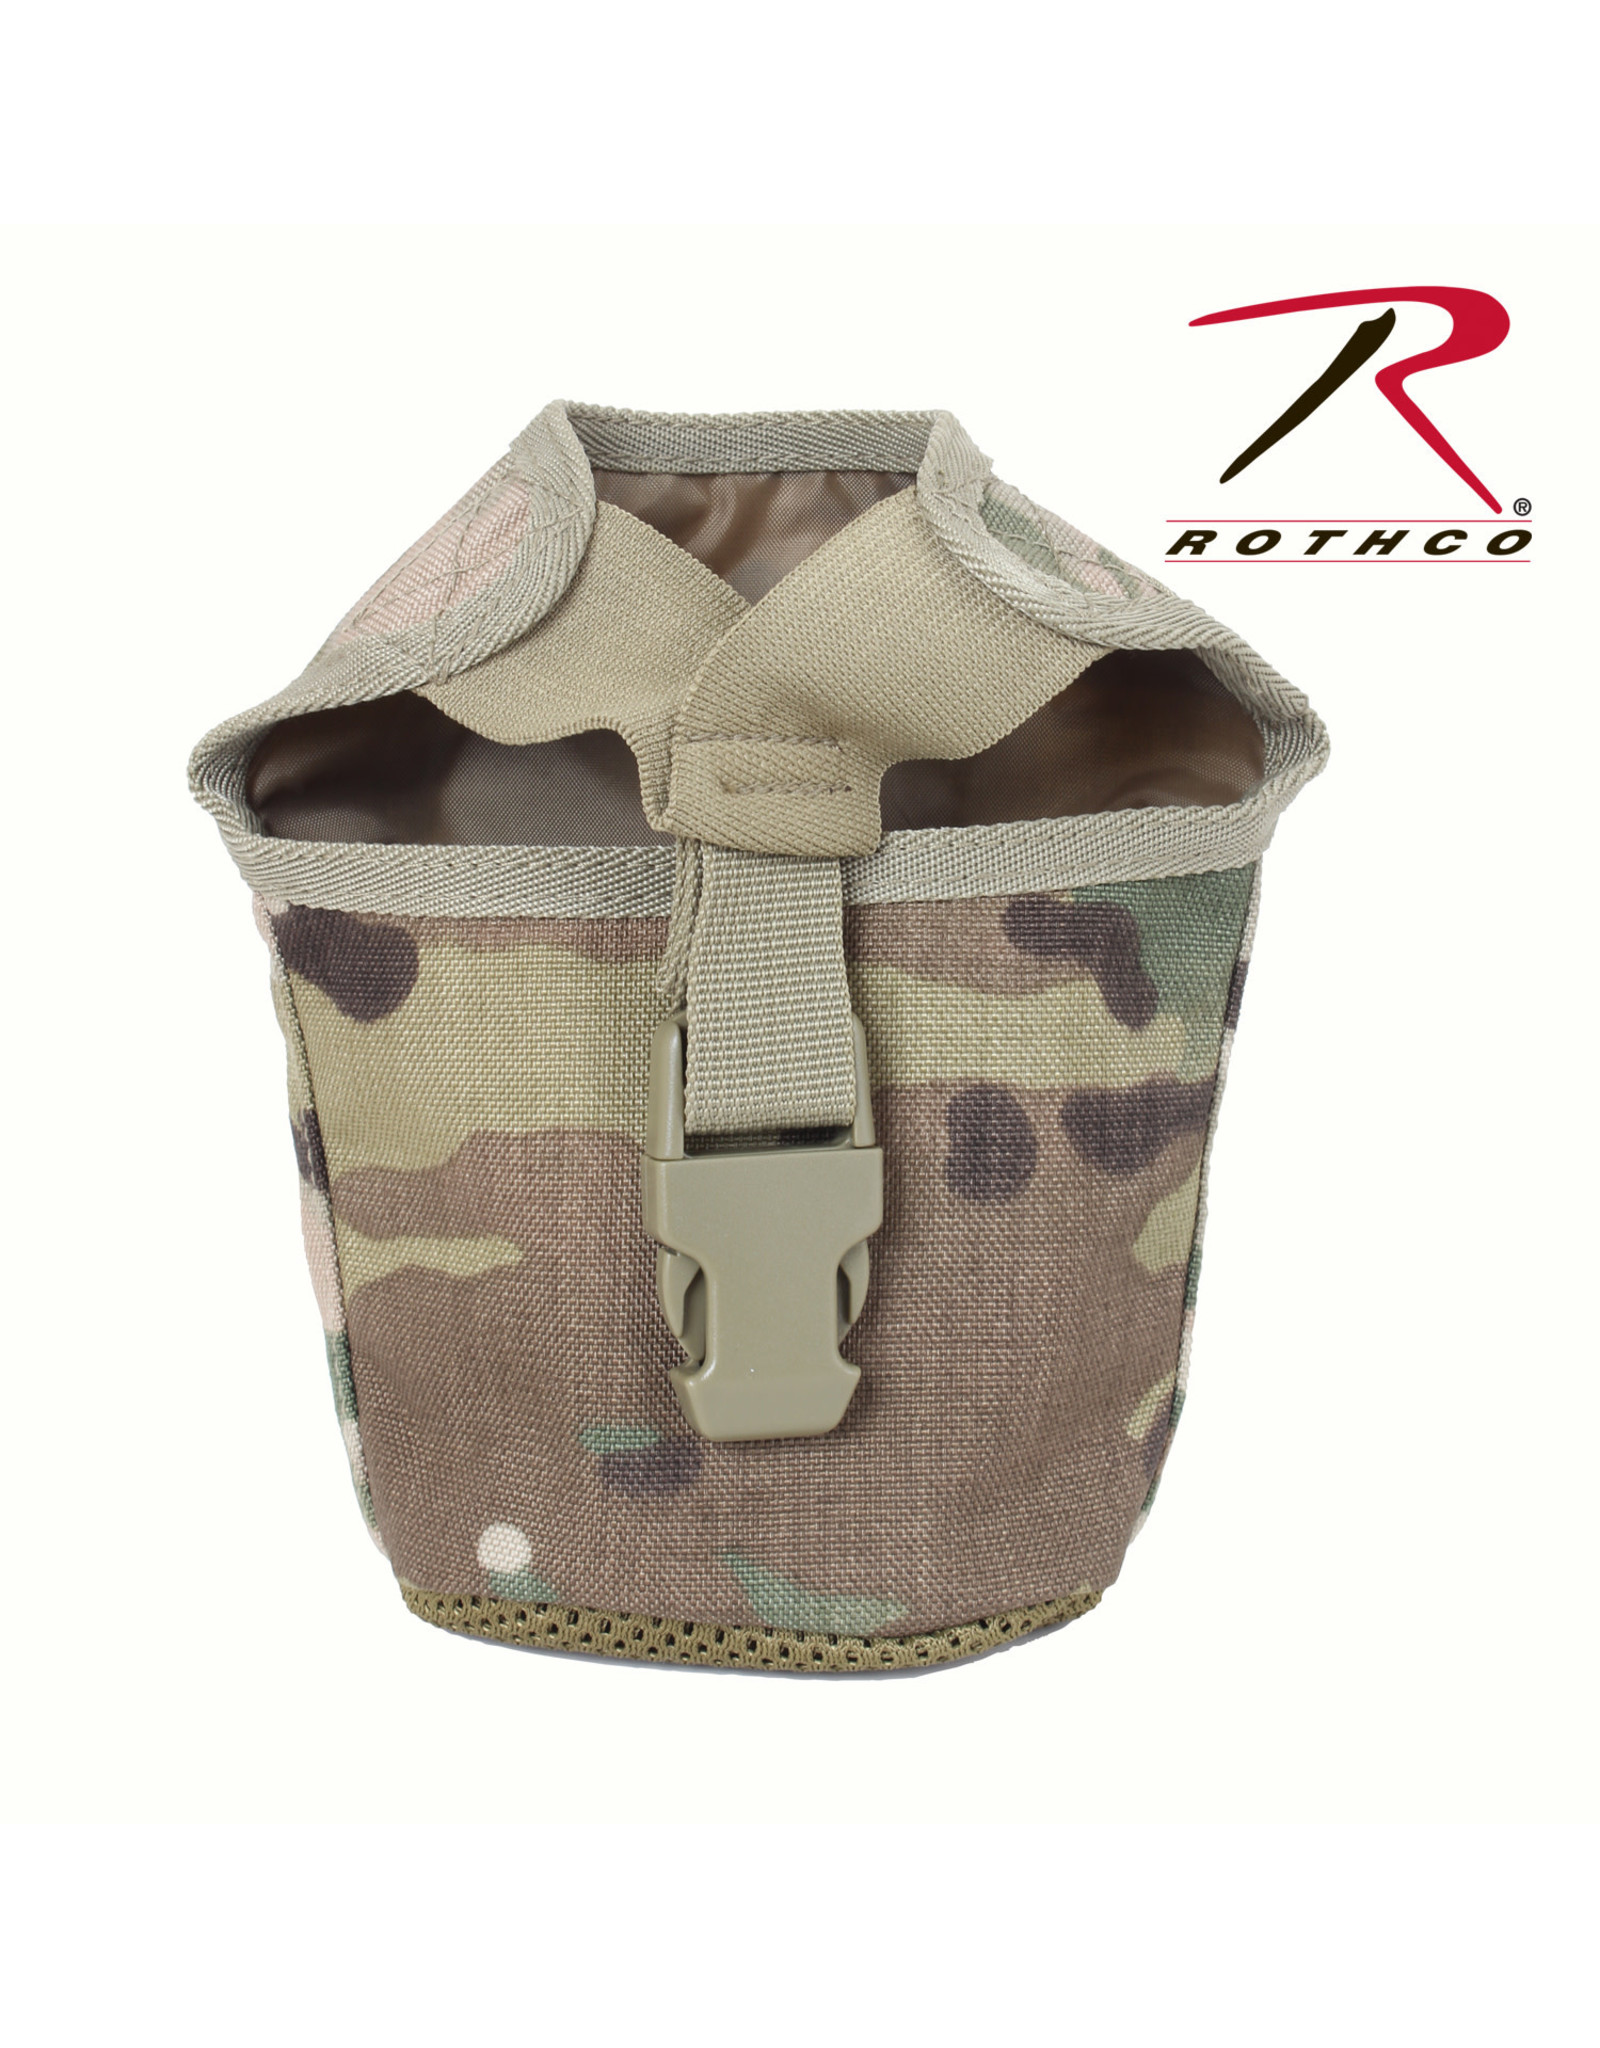 Rothco 1 QT Canteen Cover - Multicam NOT GI